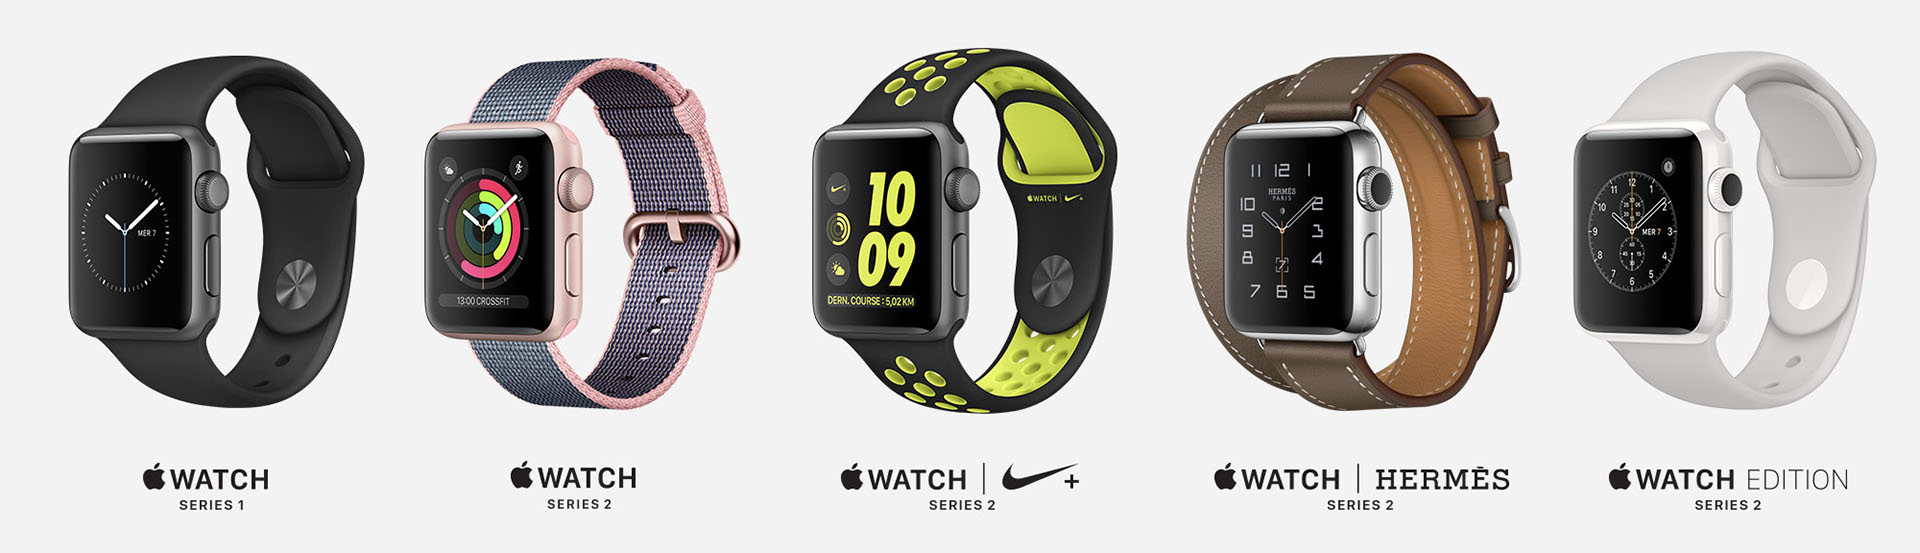 gamme_applewatch